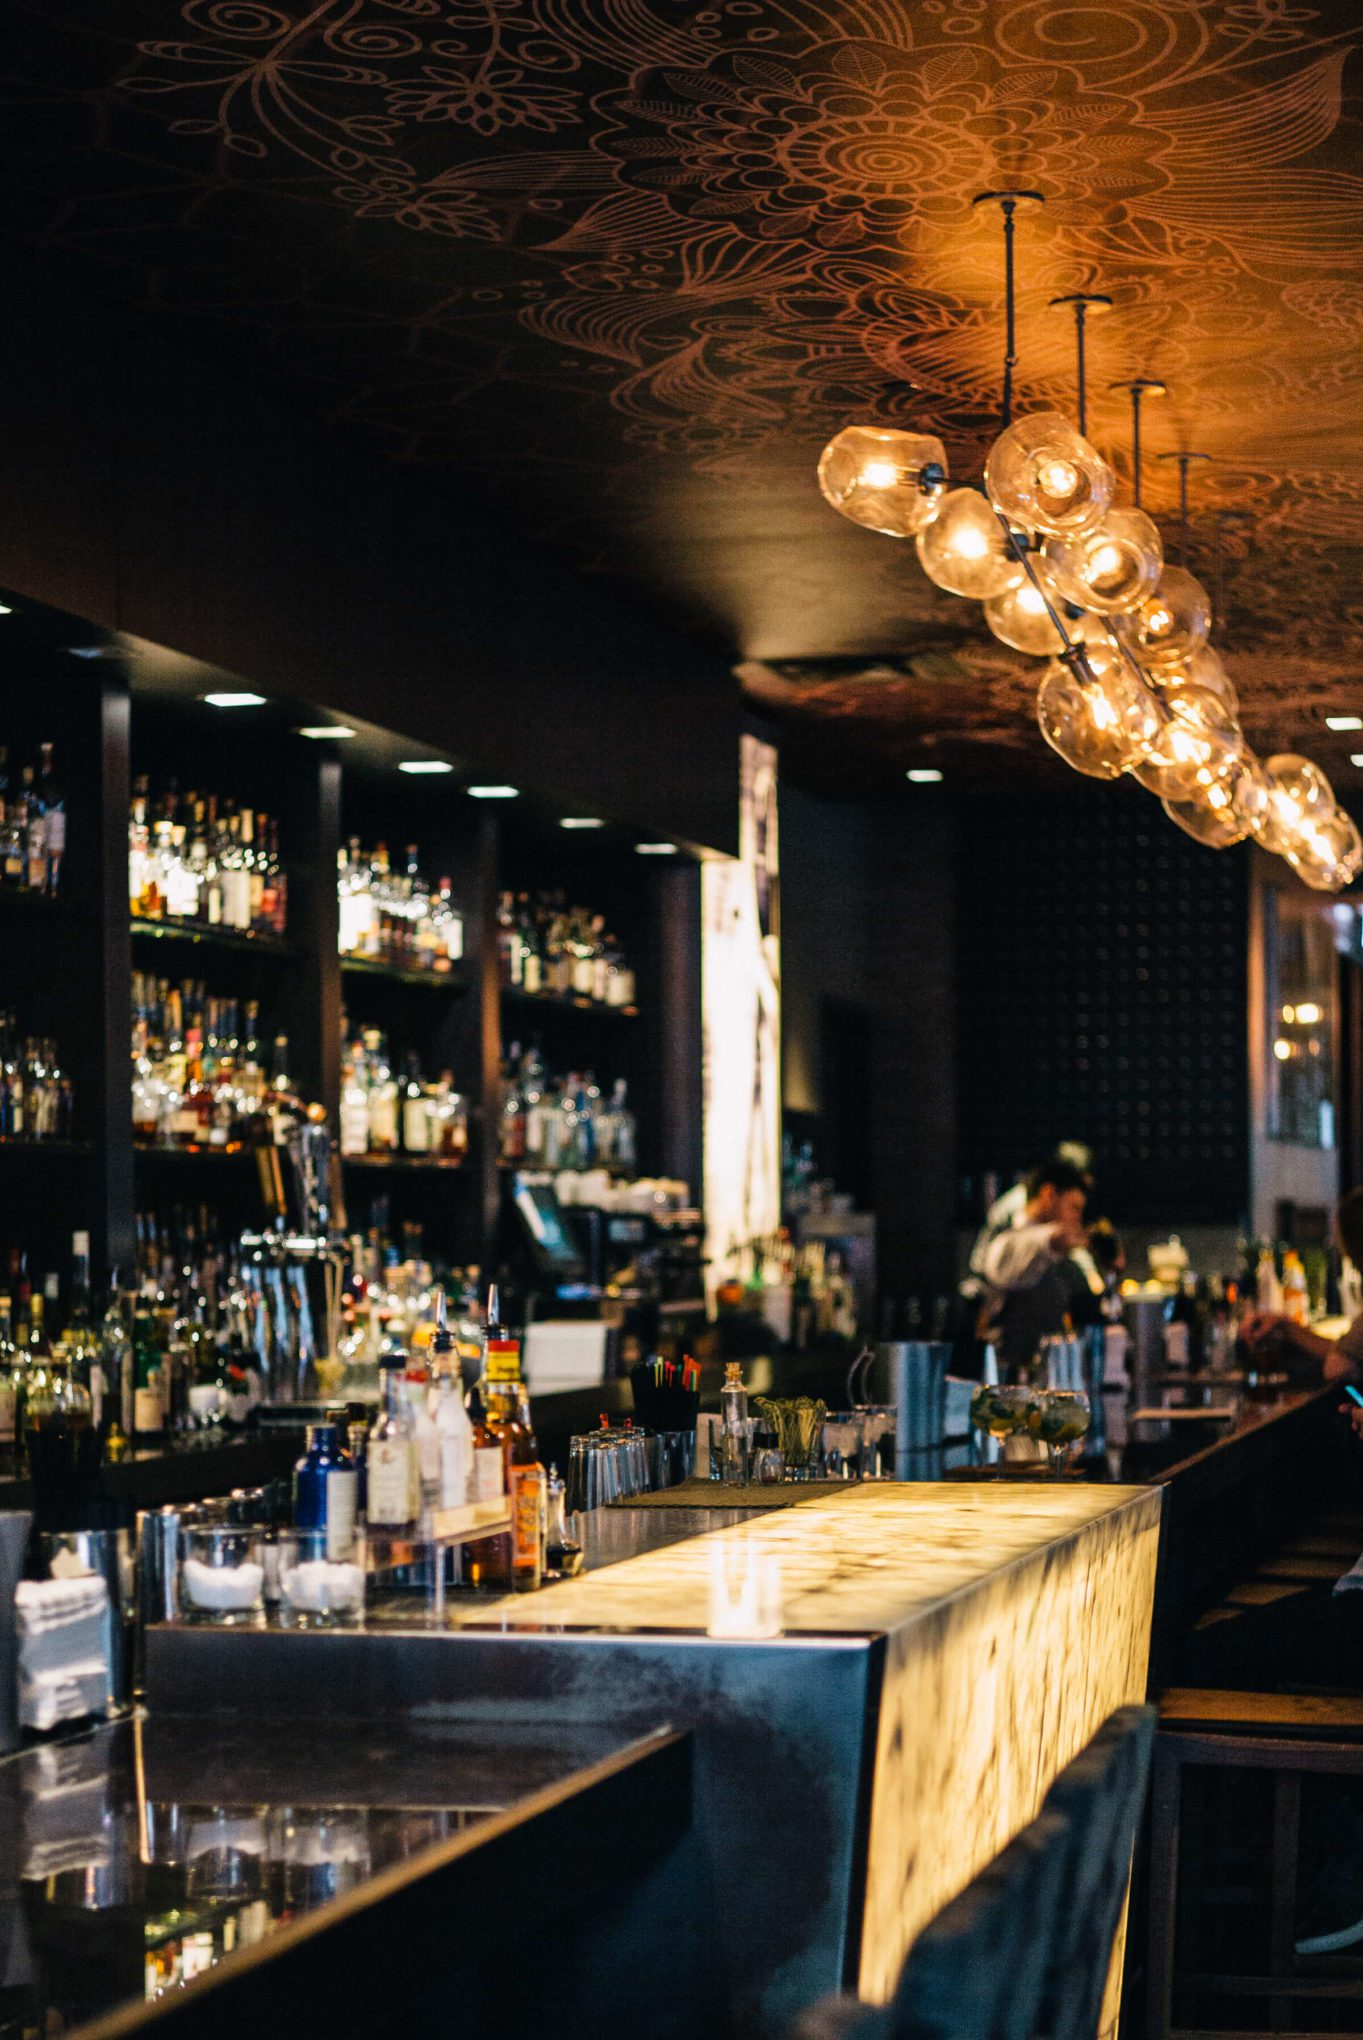 Sable Kitchen and bar in River North Chicago